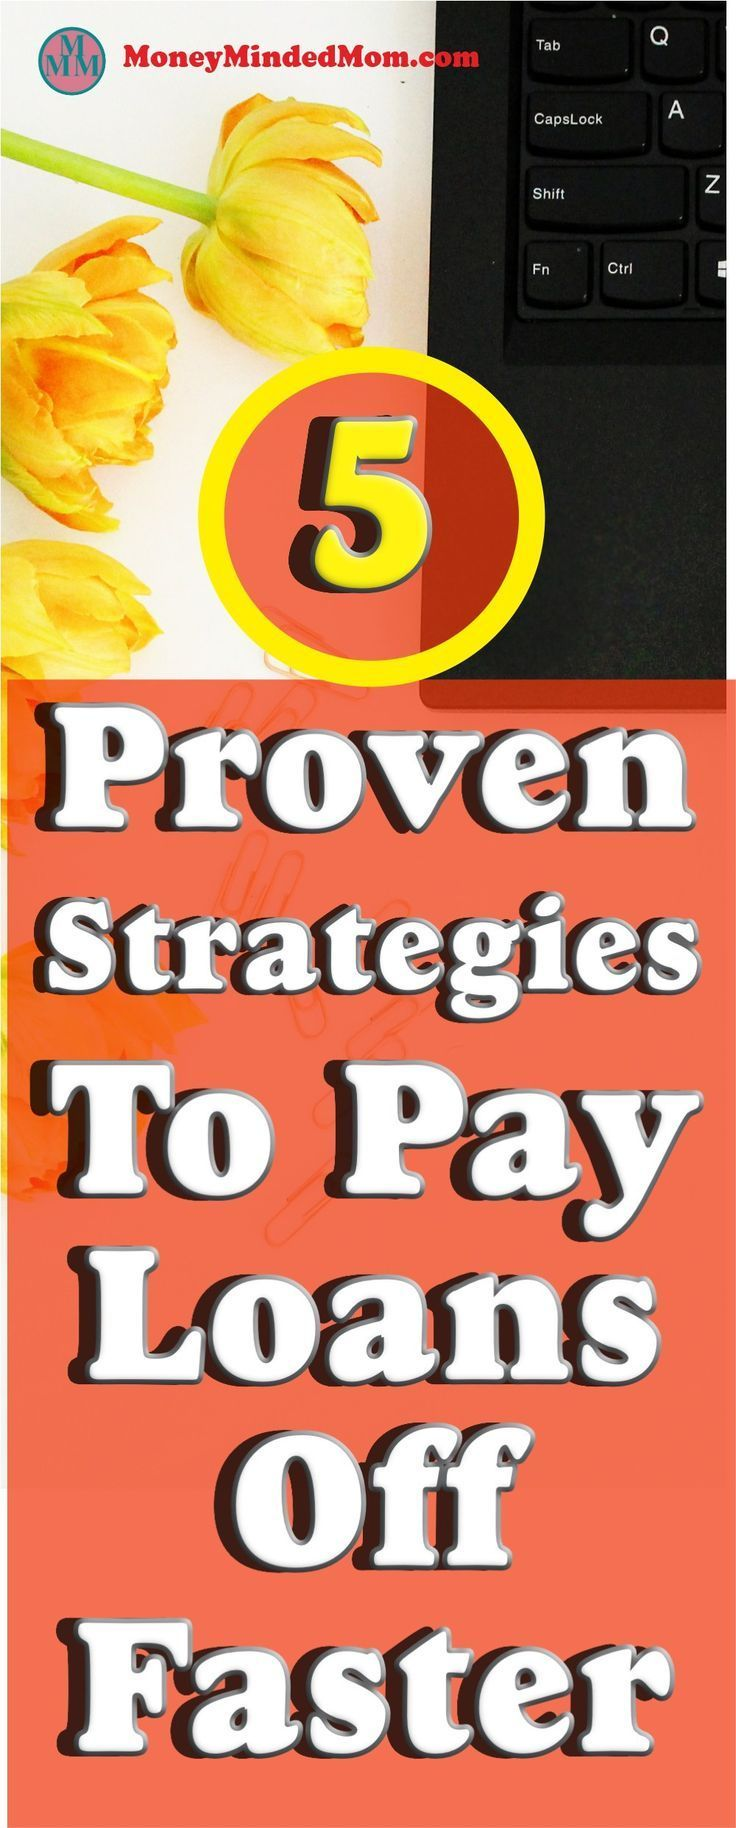 Simple Ways To Pay Off Loans Faster Money Minded Mom Money Saving Strategies Pay Loans Budgeting Money